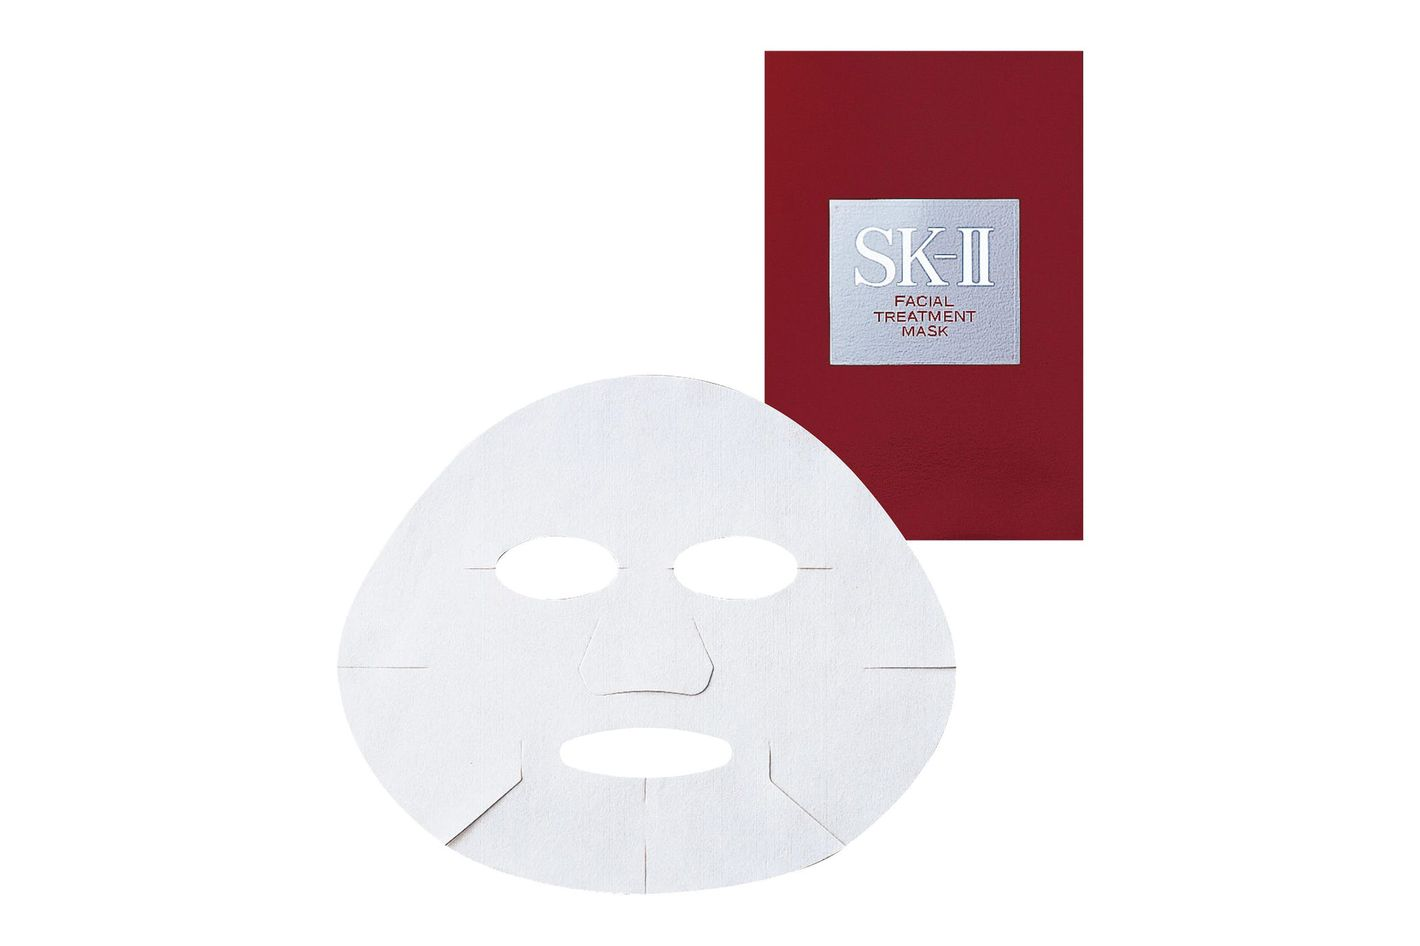 SK-II Facial Treatment Mask